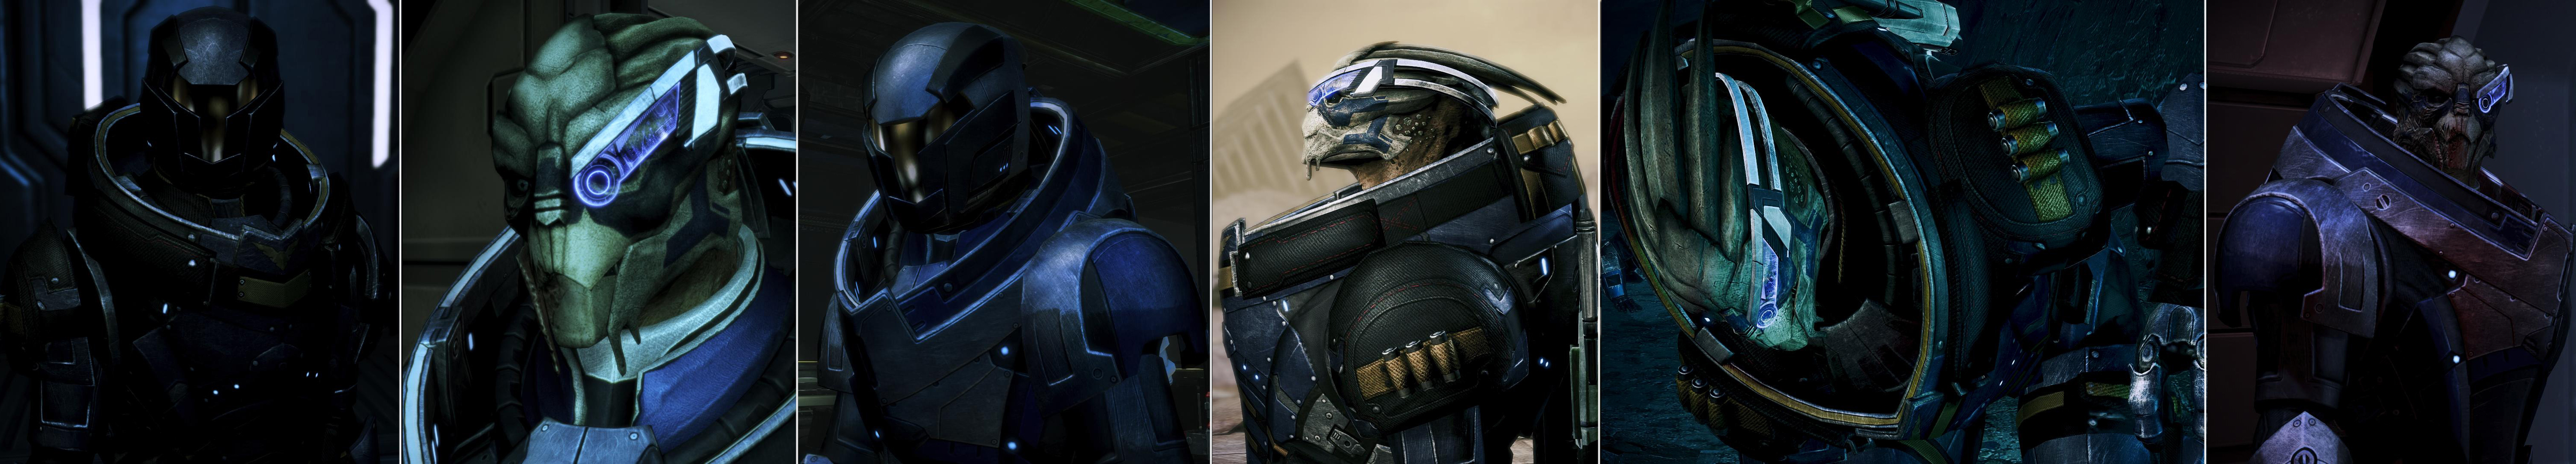 garrus_collagef0umq.jpg